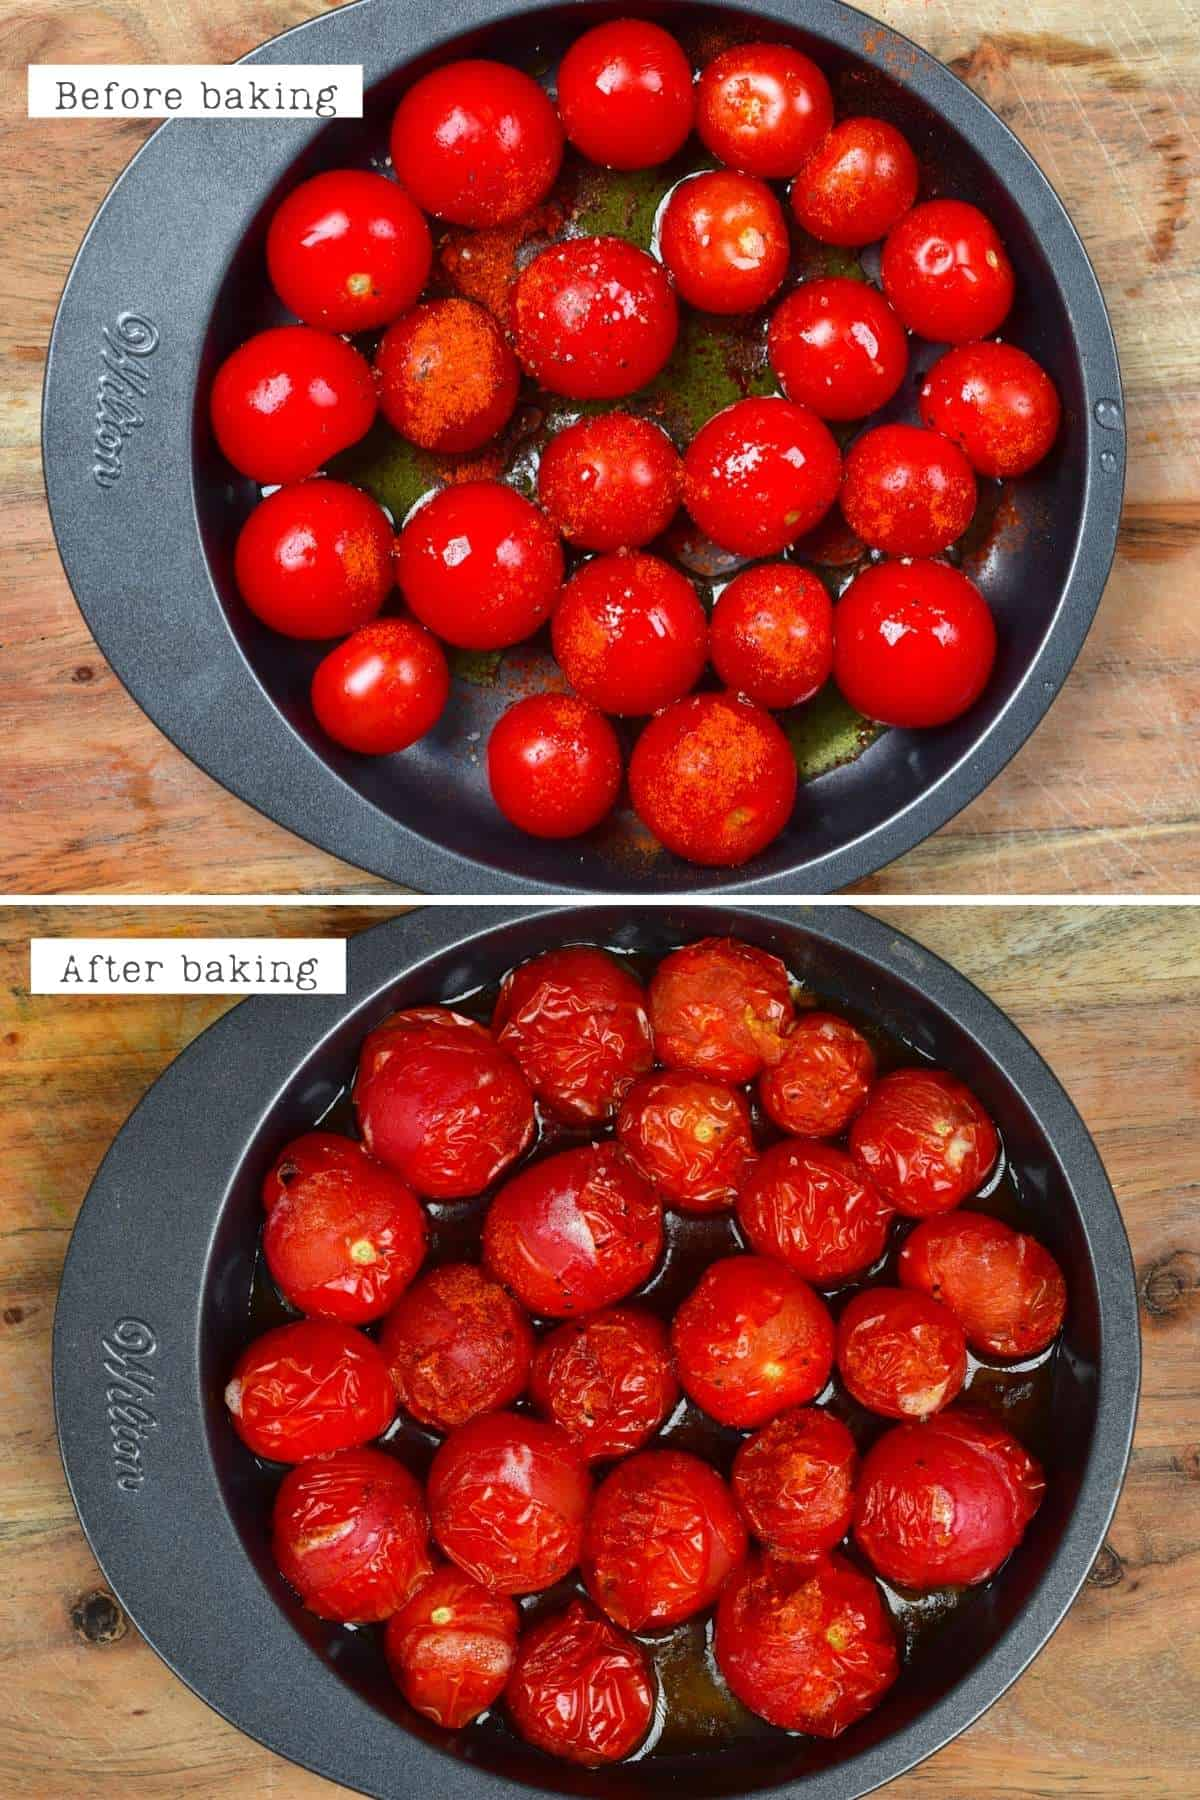 Before and after baking tomatoes